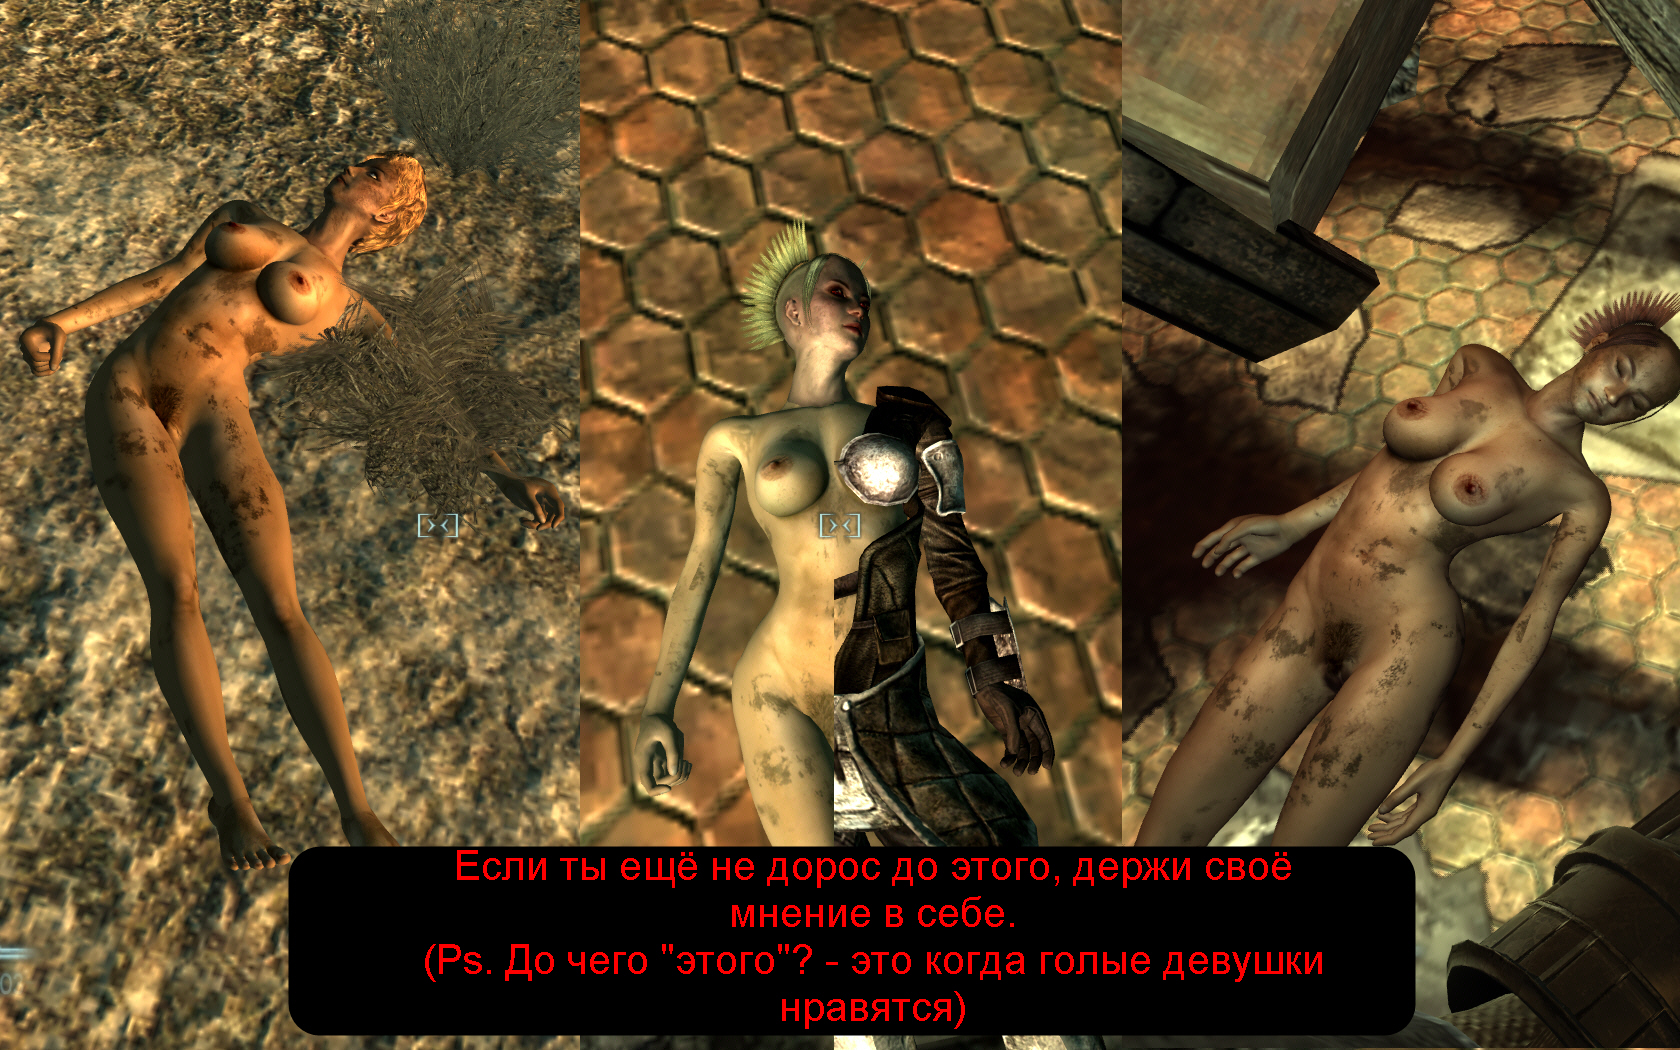 Naked girls playing fallout, my dick in her ass